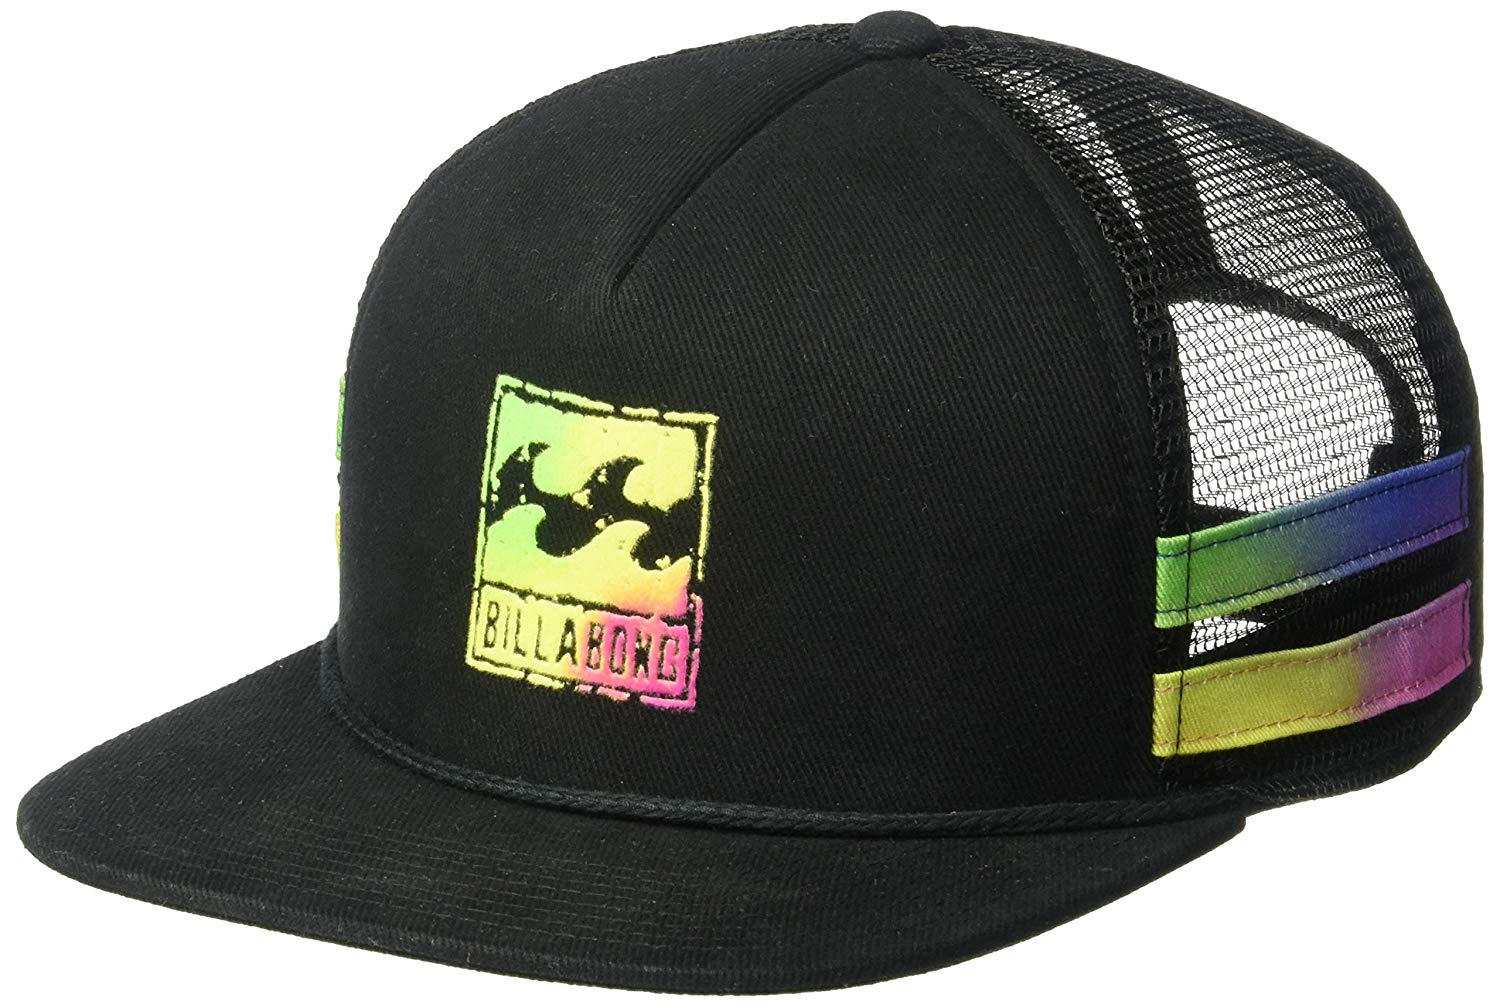 promo code 7f0e2 87d54 Get Quotations · Billabong Reissue Trucker Cap